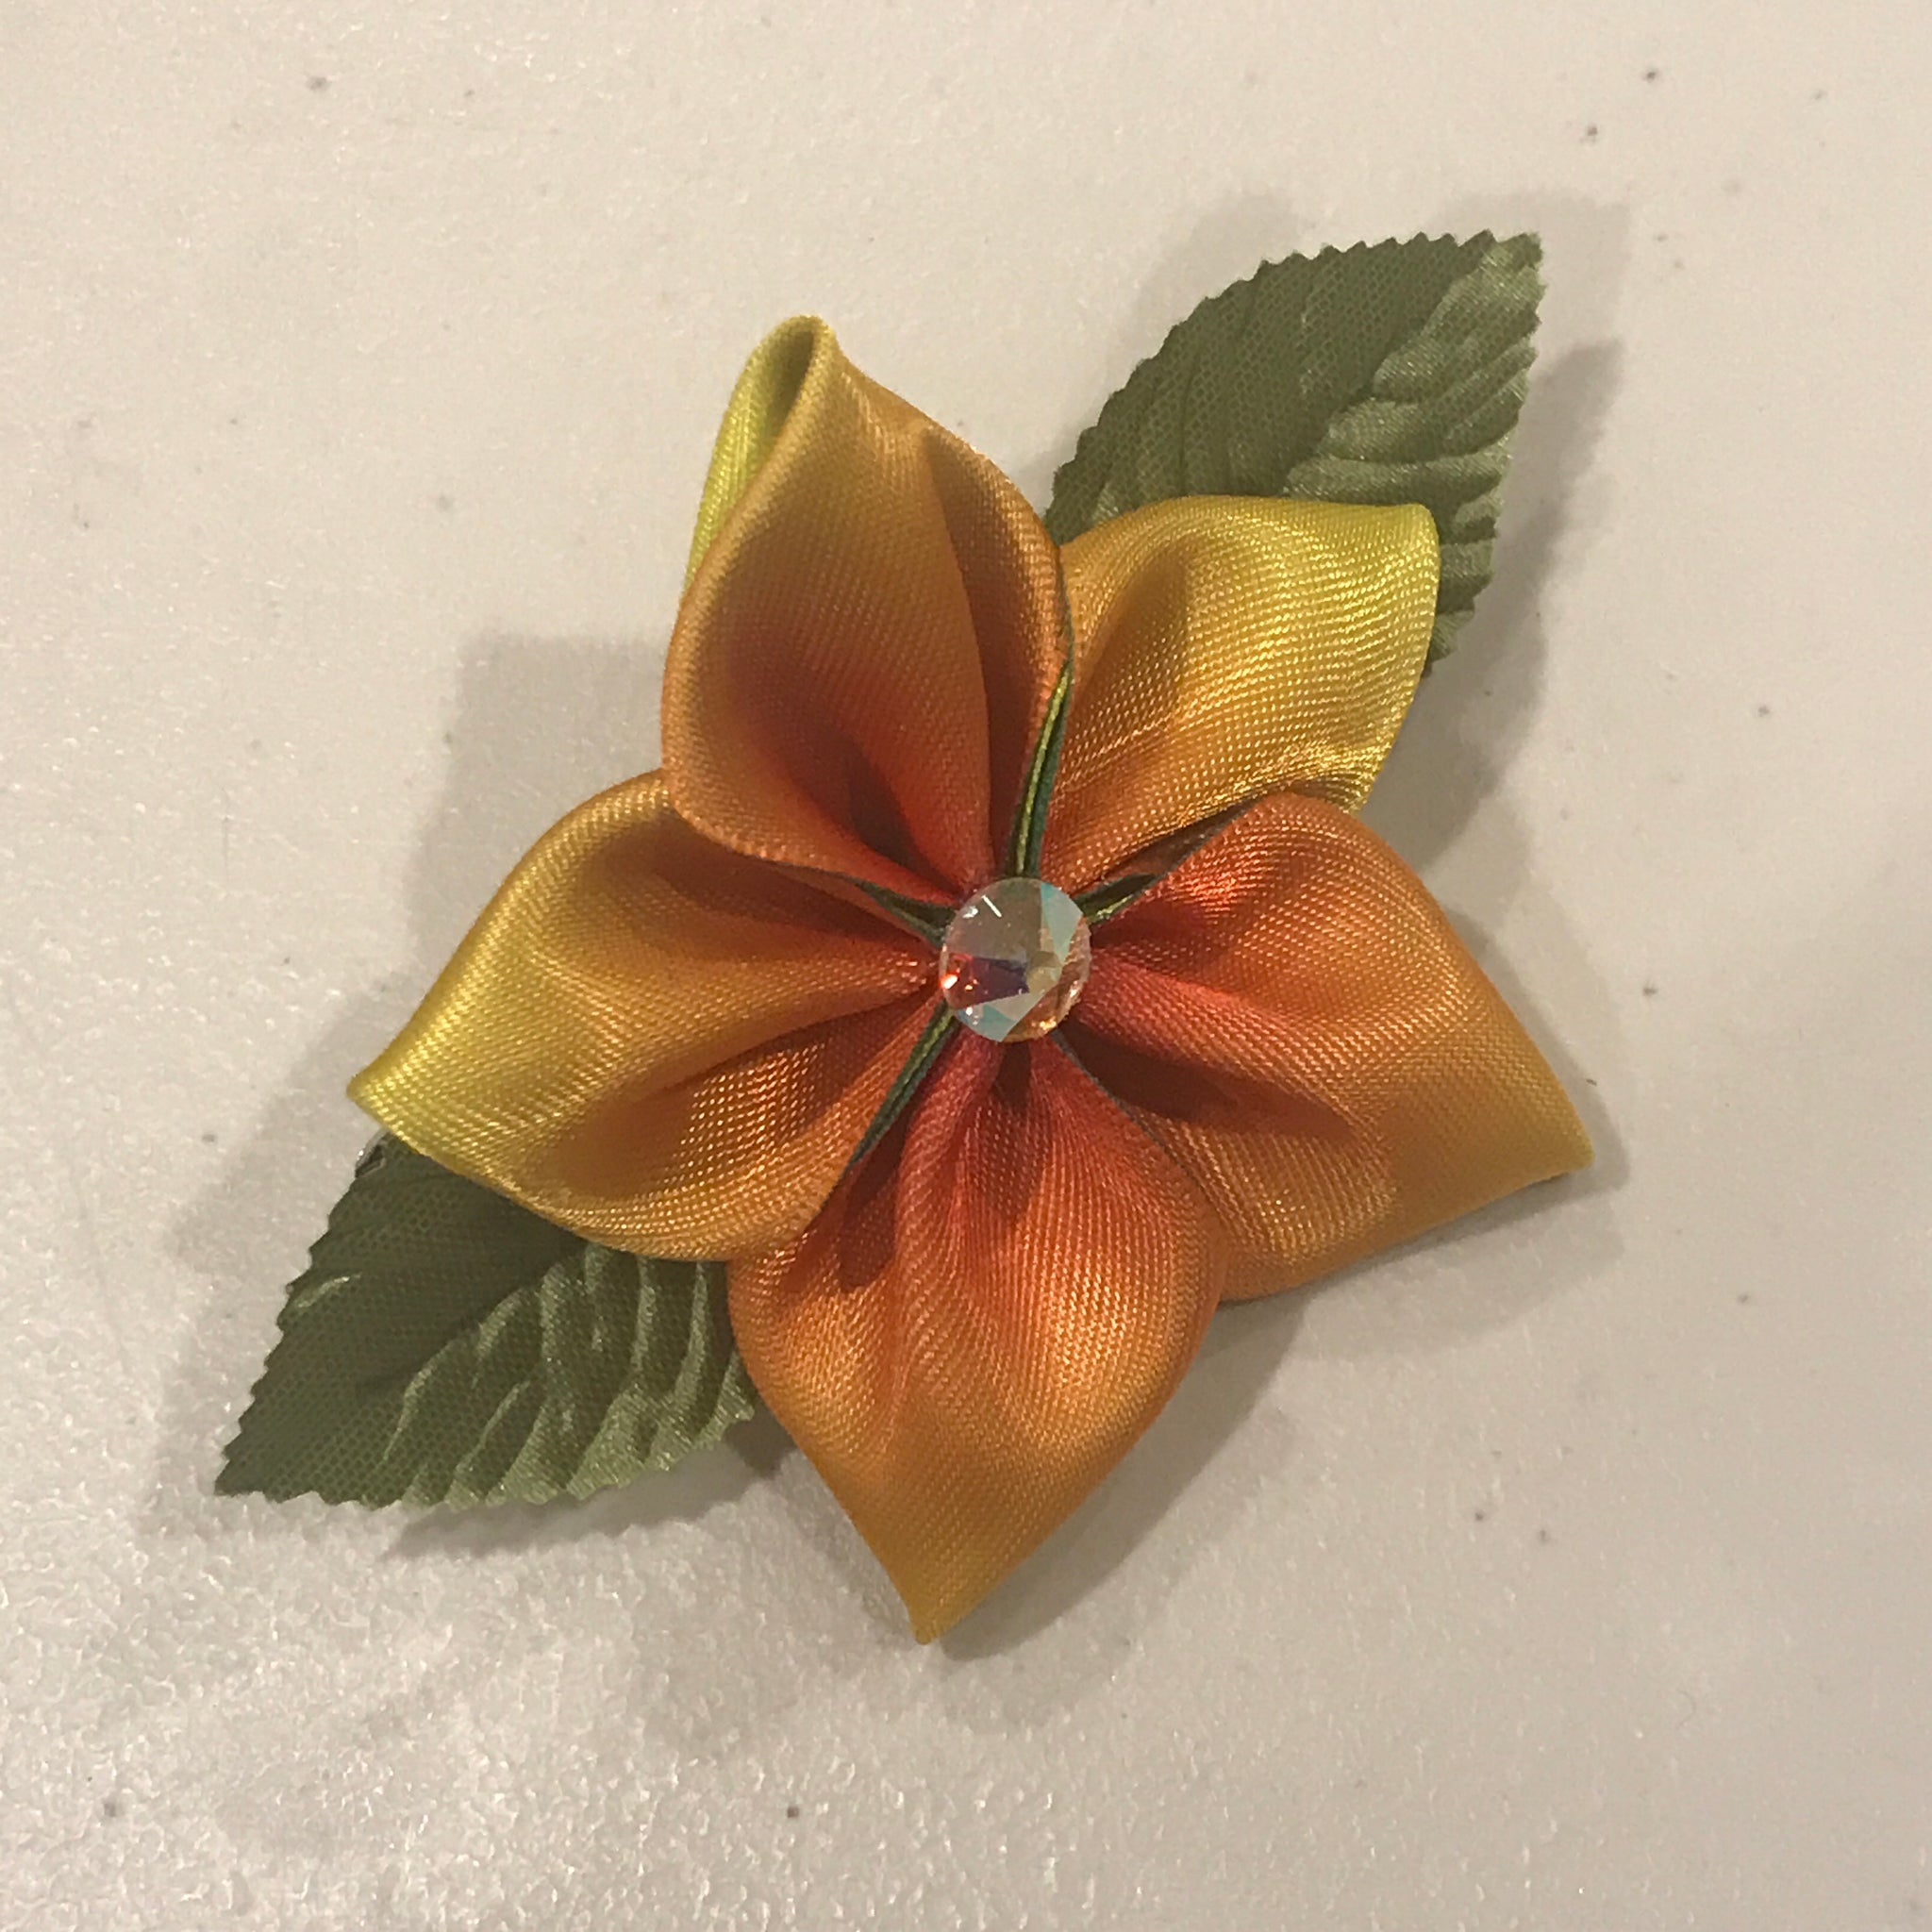 Kanzashi flower hair clip, yellow